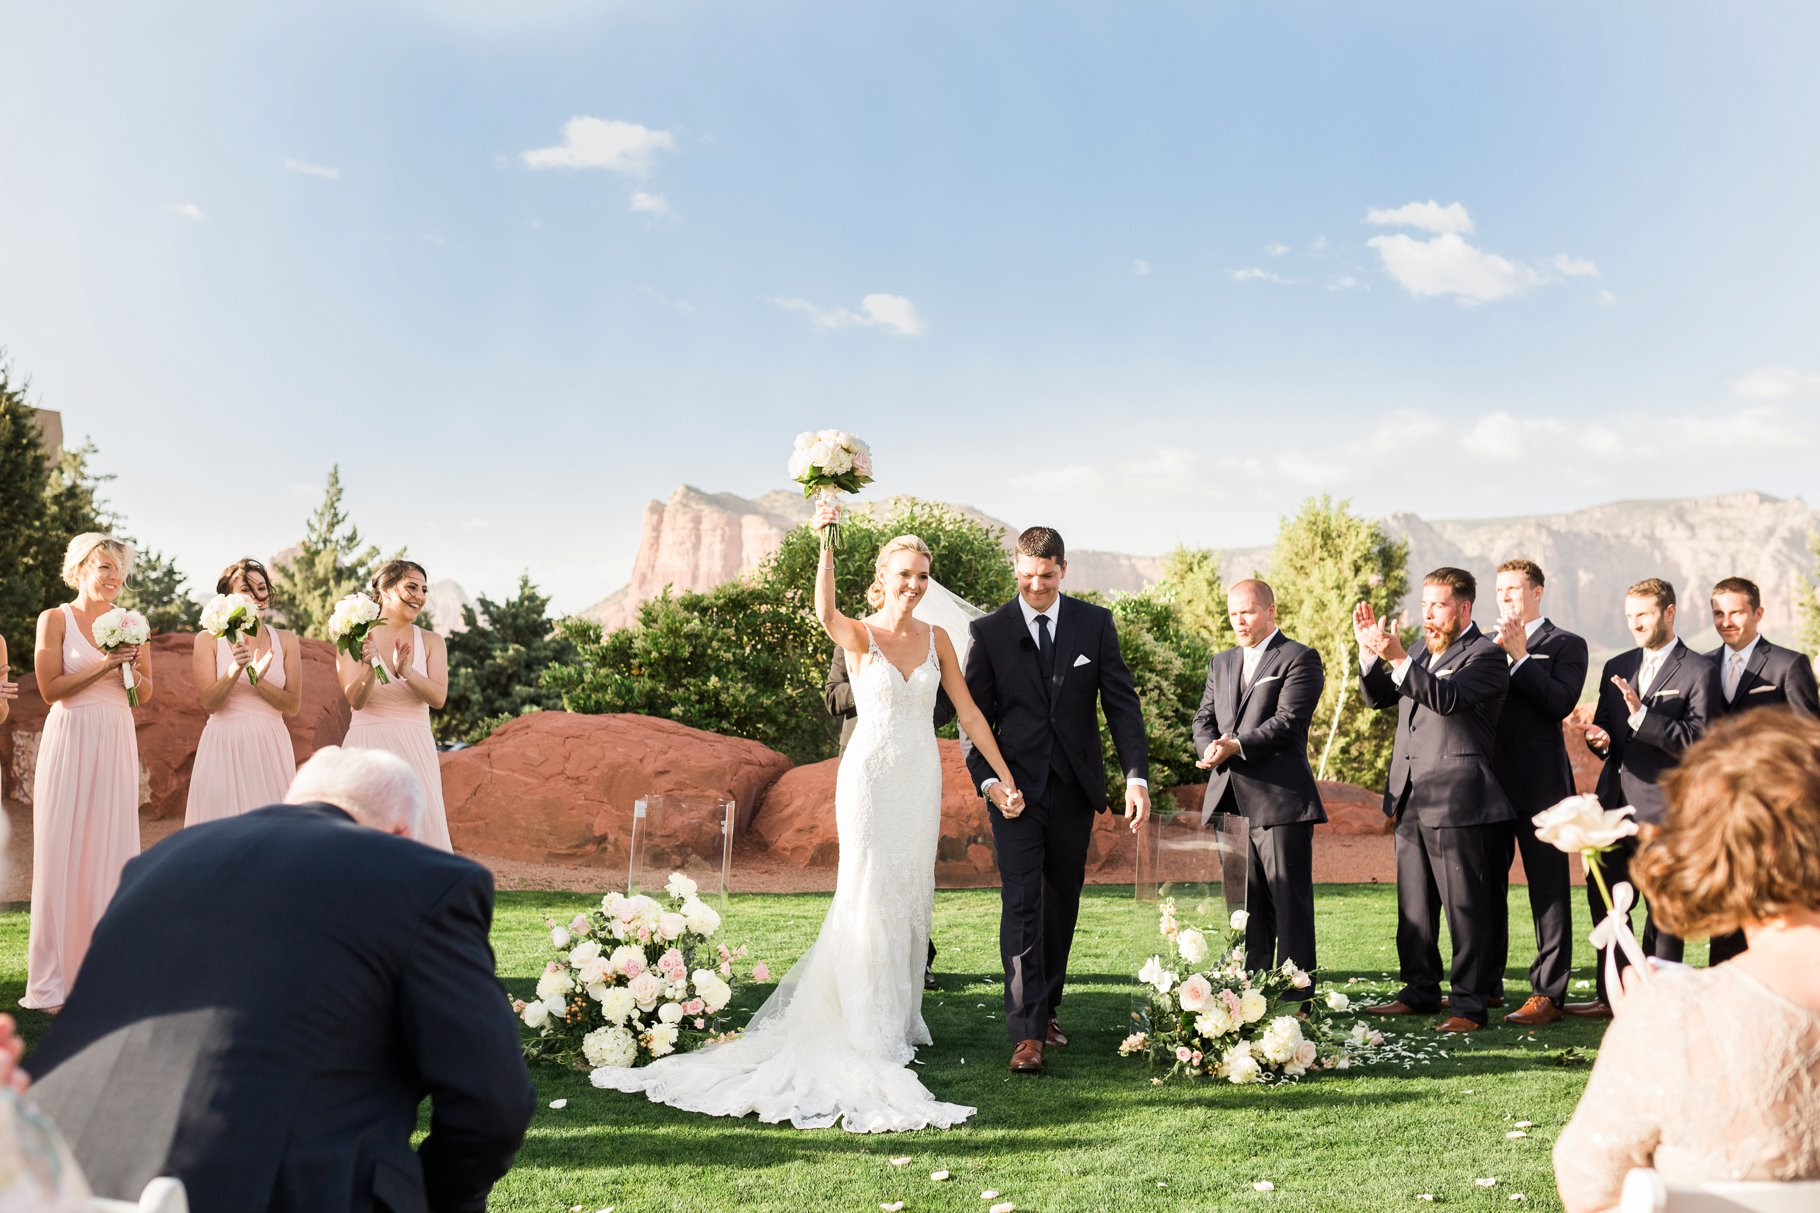 sedona wedding-12_GRETCHEN WAKEMAN PHOTOGRAPHY.jpg